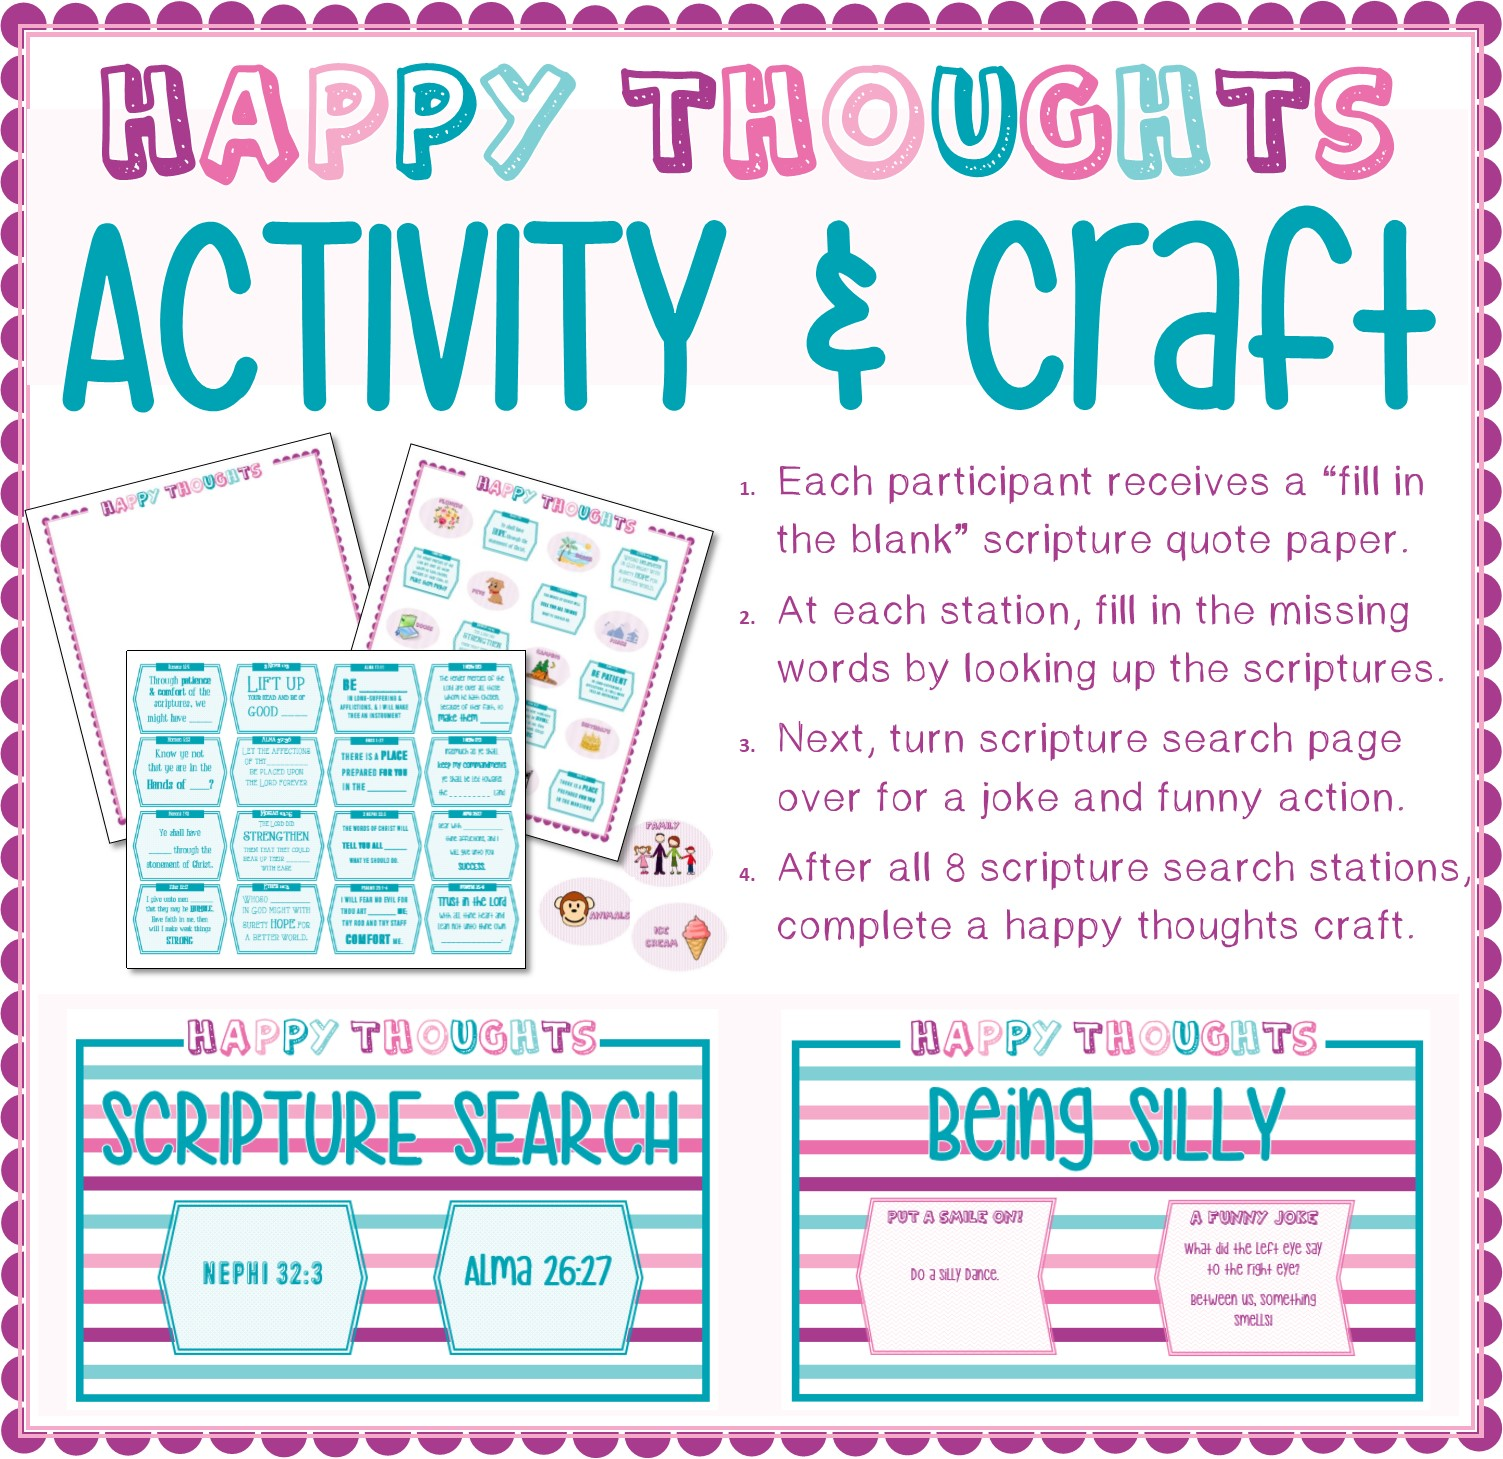 Happy Thoughts Activity & Craft